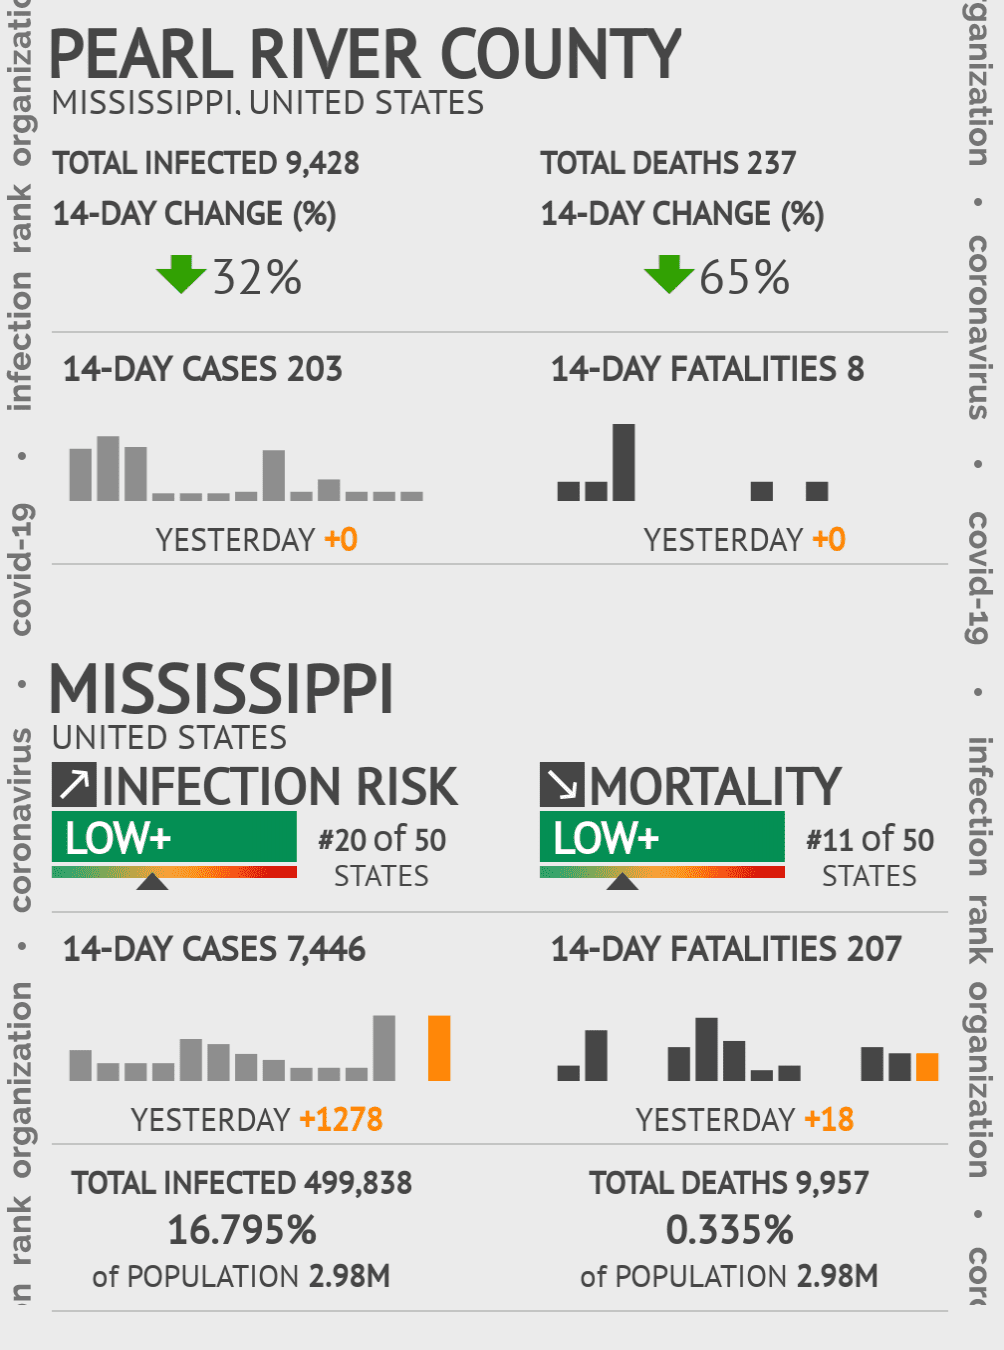 Pearl River County Coronavirus Covid-19 Risk of Infection on March 06, 2021